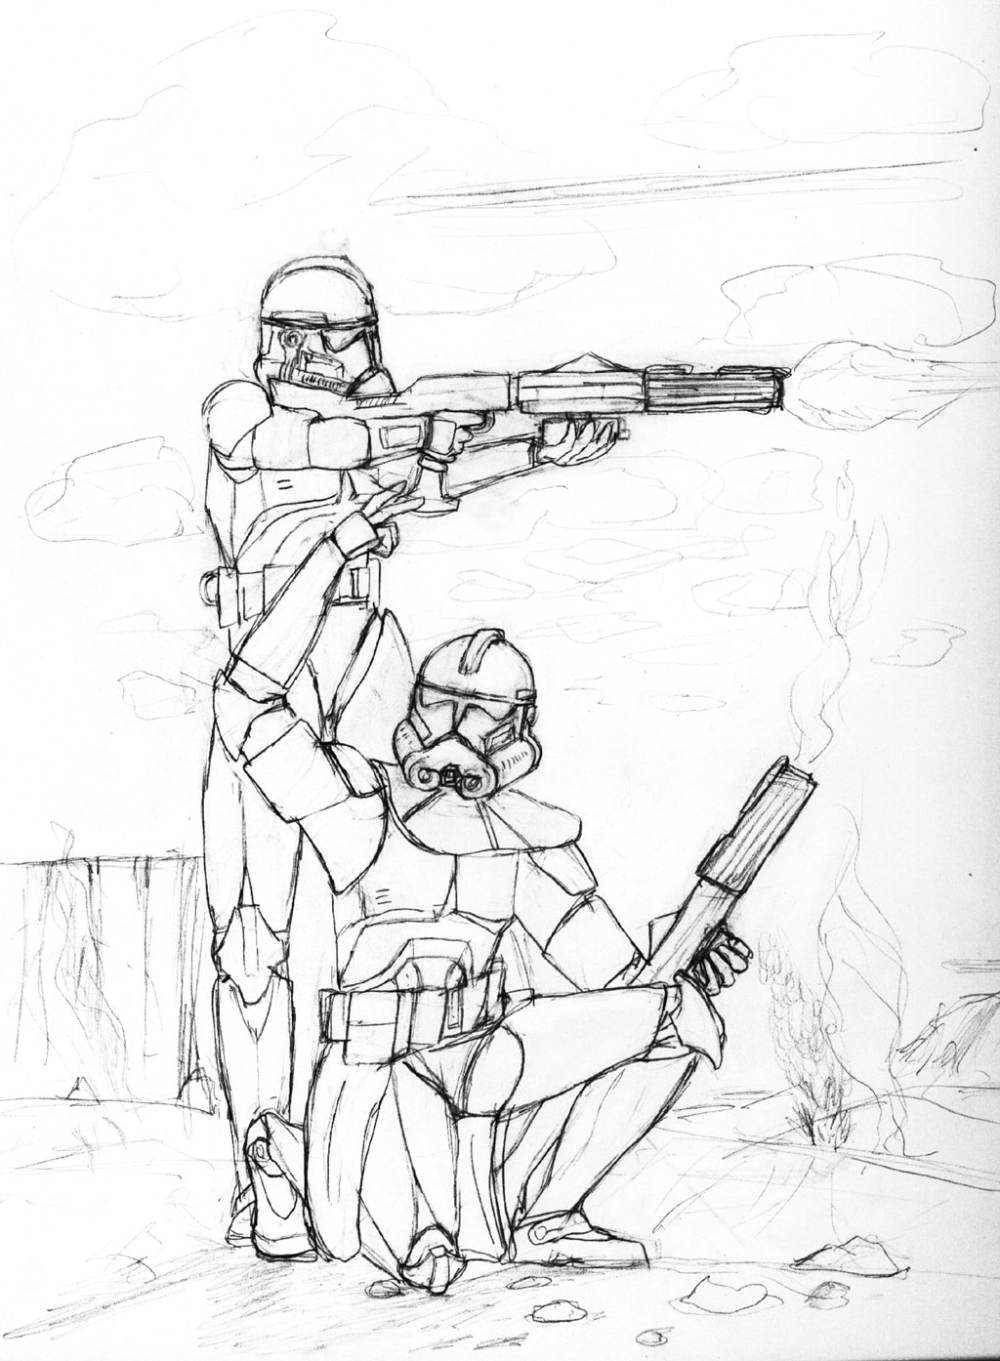 Star Wars Clone Trooper Coloring Page Star Wars Clone Wars Clone Trooper Coloring Pages